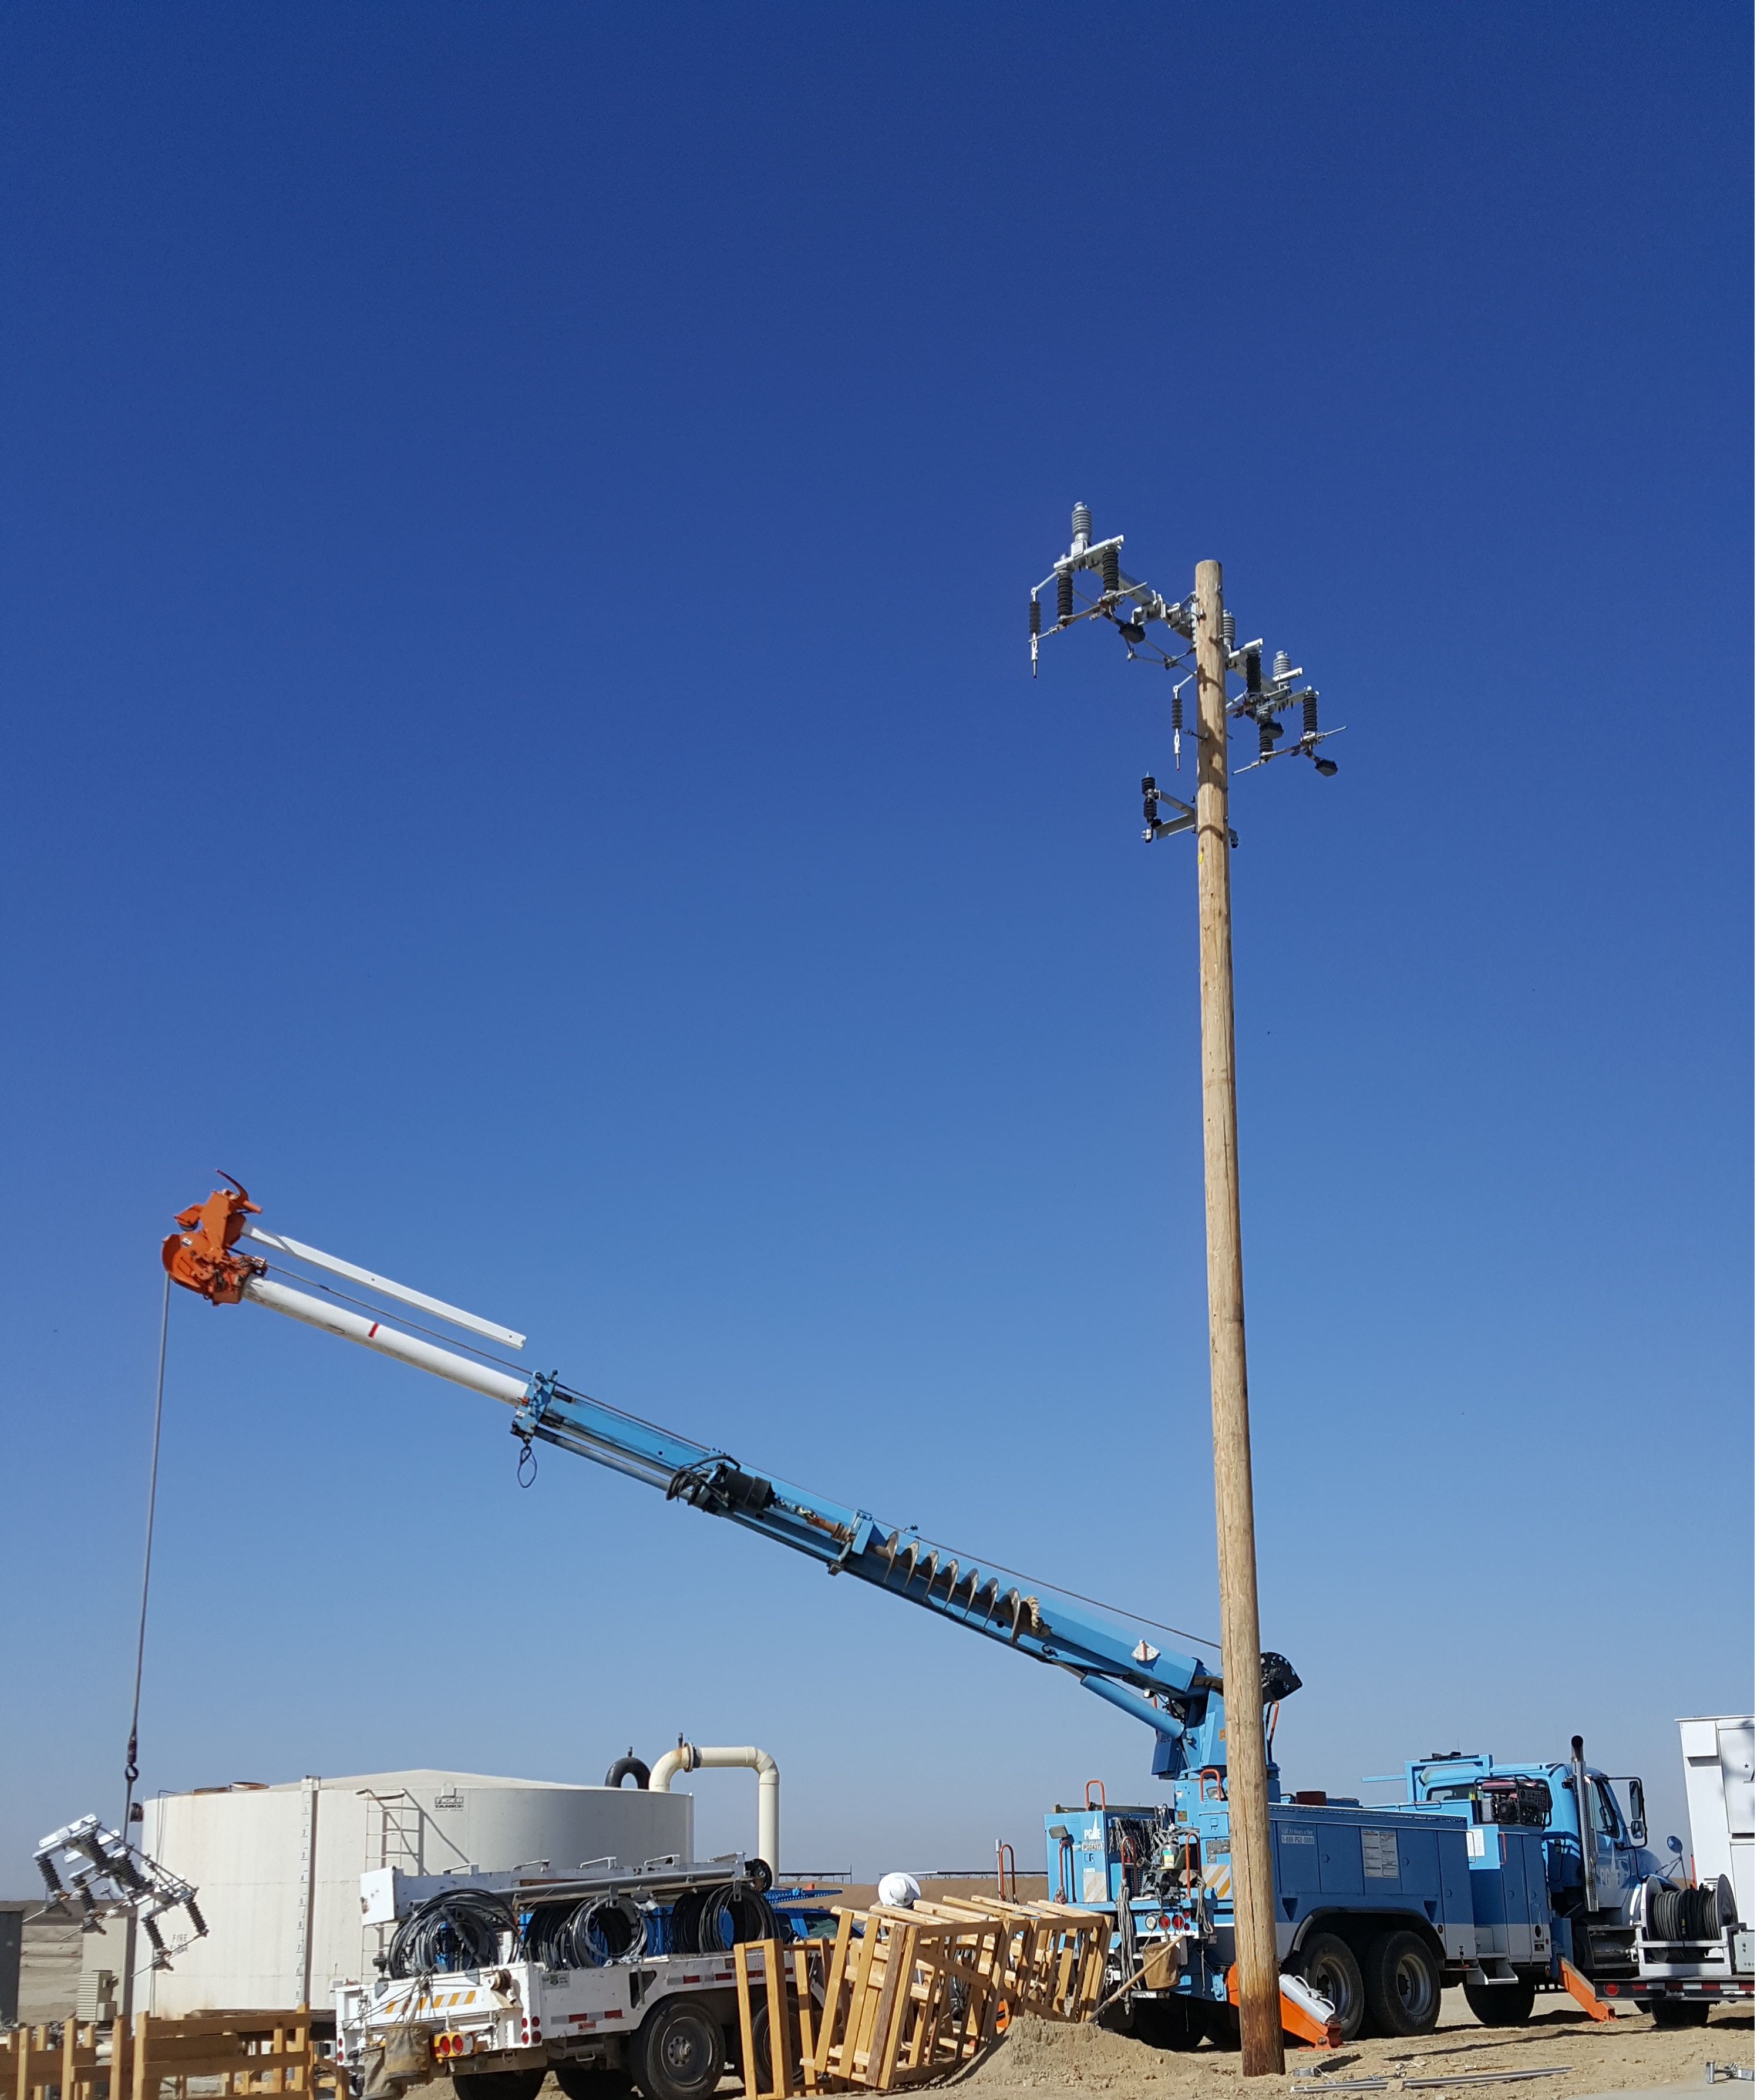 Installing the PG&E electrical pole at the Lakeview Farms Dairy Biogas-to-Electricity Project